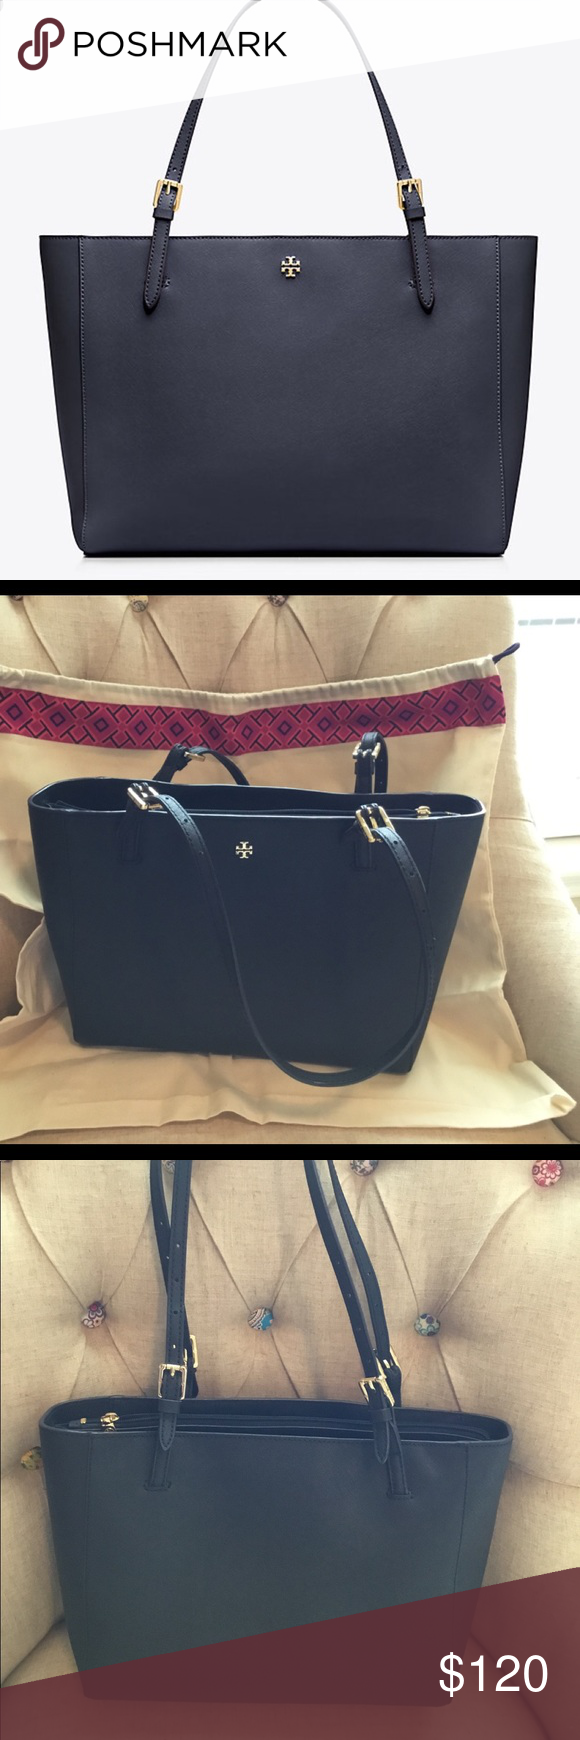 3b6a48163068a6 Tory Burch York Small Buckle Tote Tory Burch York Small Buckle Tote with  dust bag.